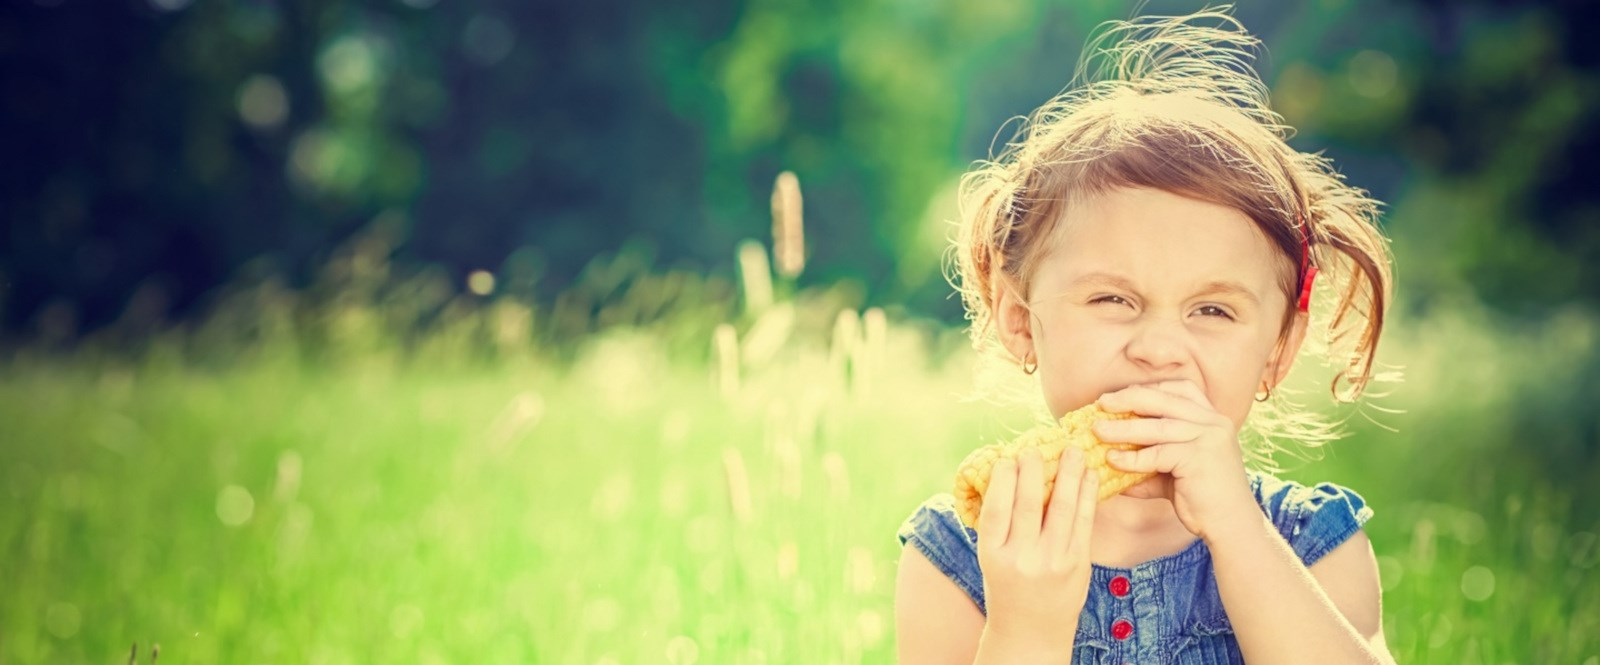 girl eating a corn of cob in a field